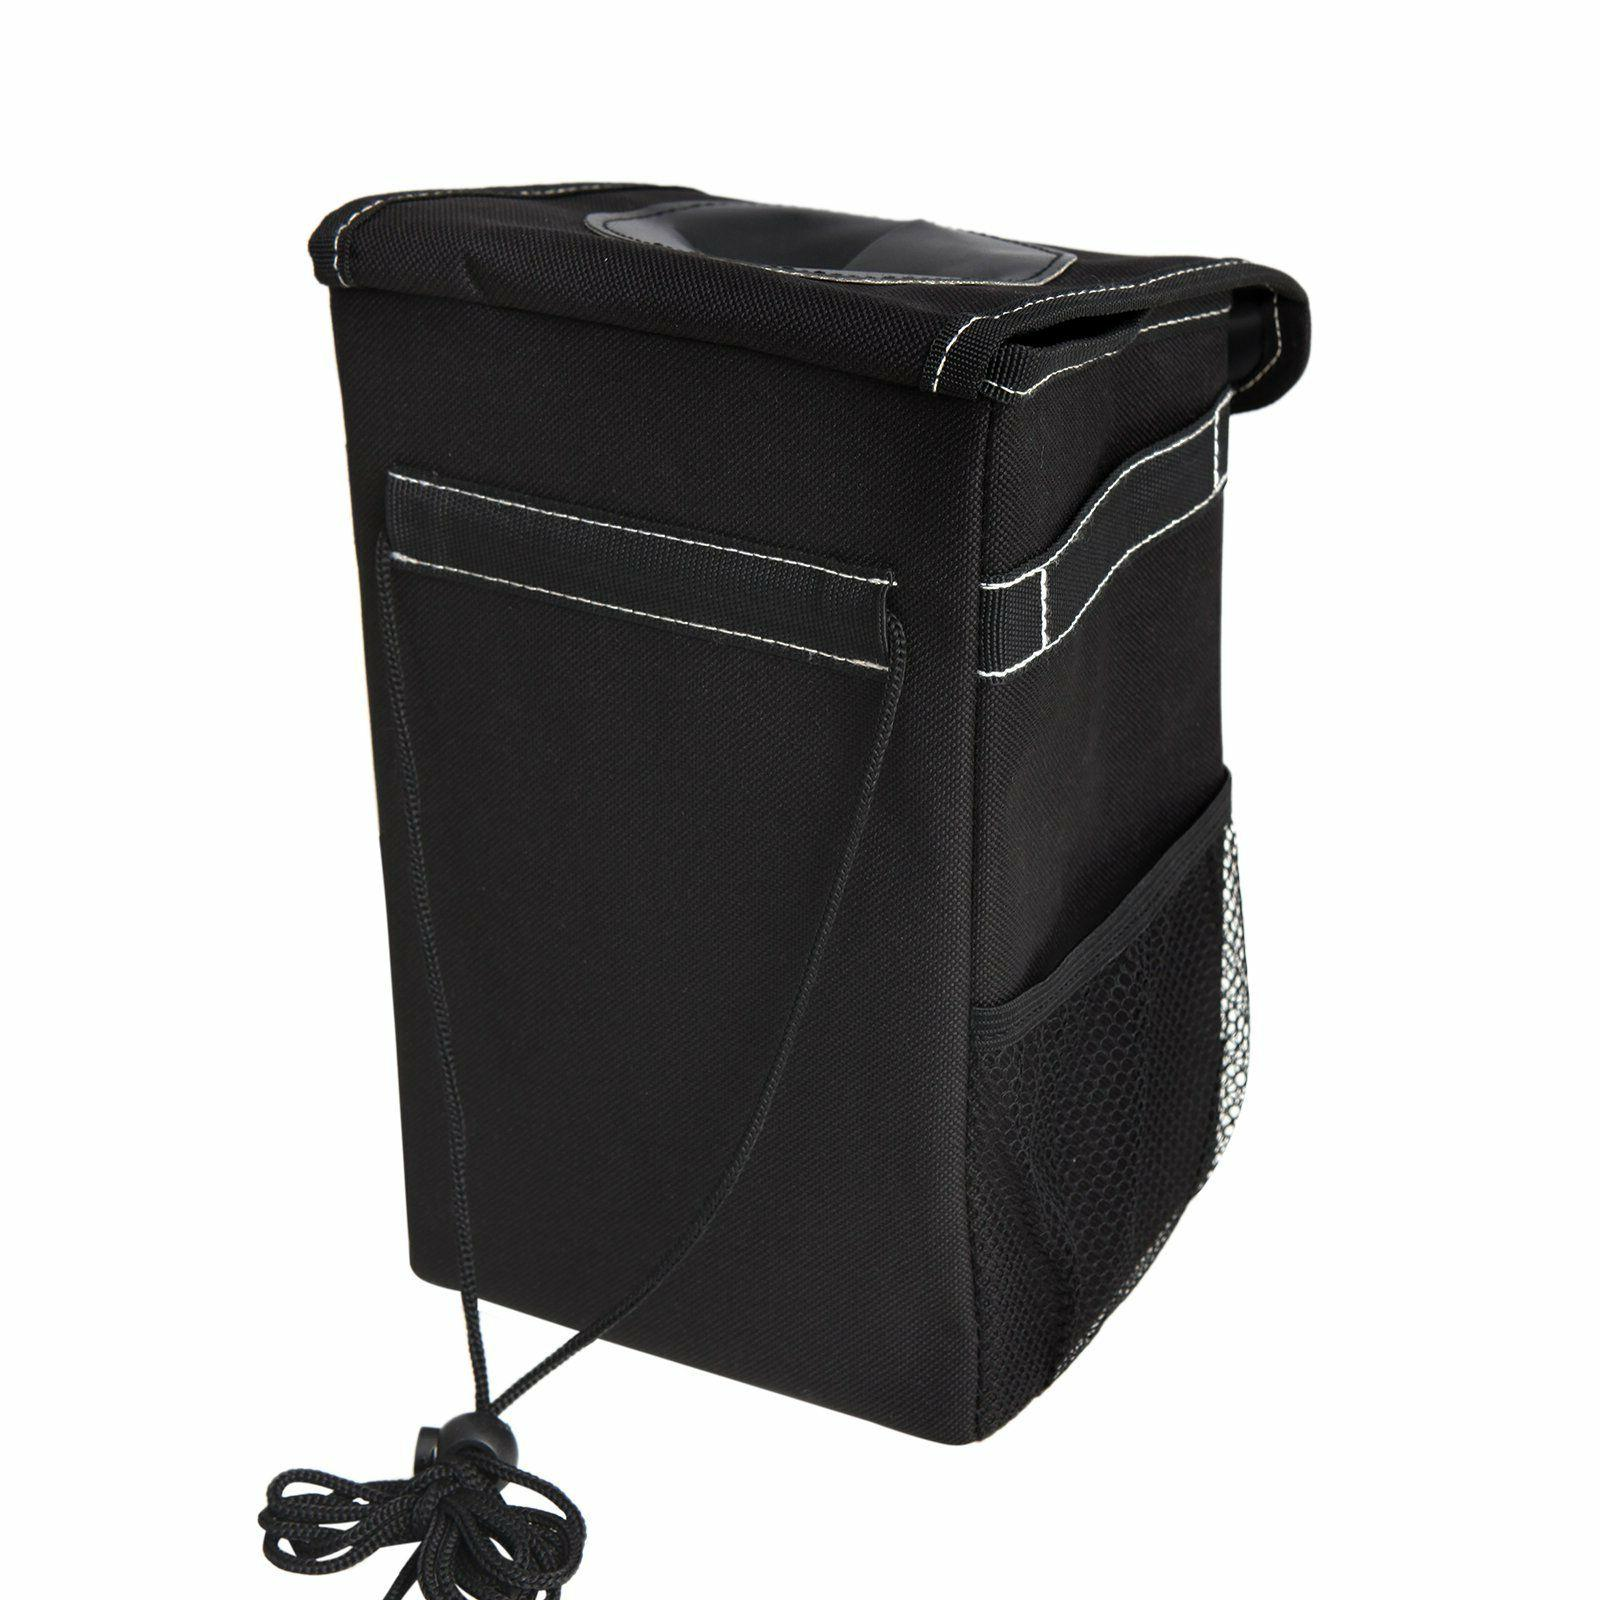 Stash Away Can With Storage Pockets Vehicle Pouch